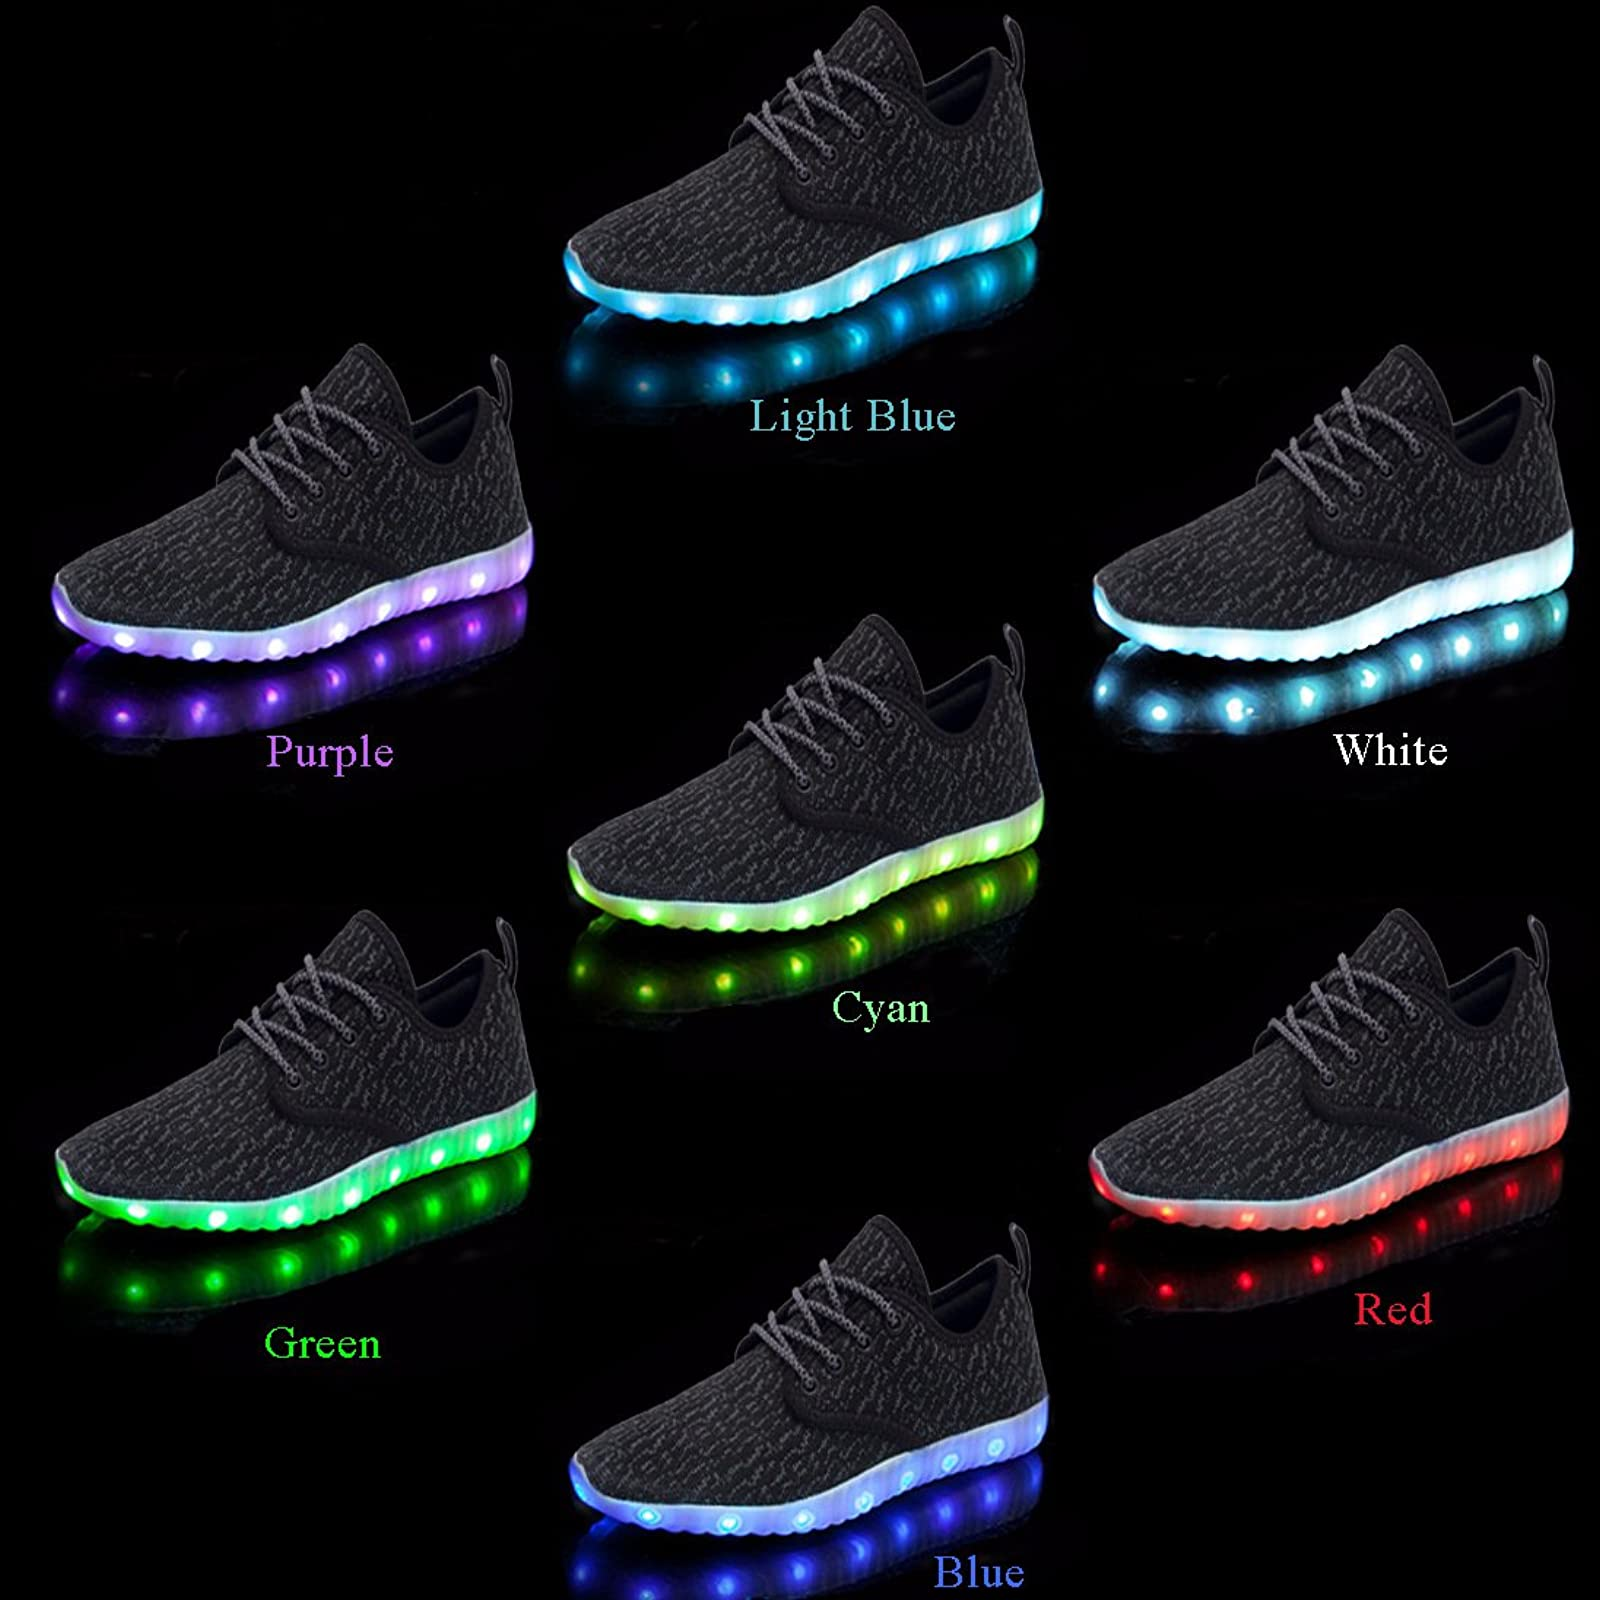 Believed Led Light Up Shoes for Boys Girls Breathable USB Flashing Sneakers